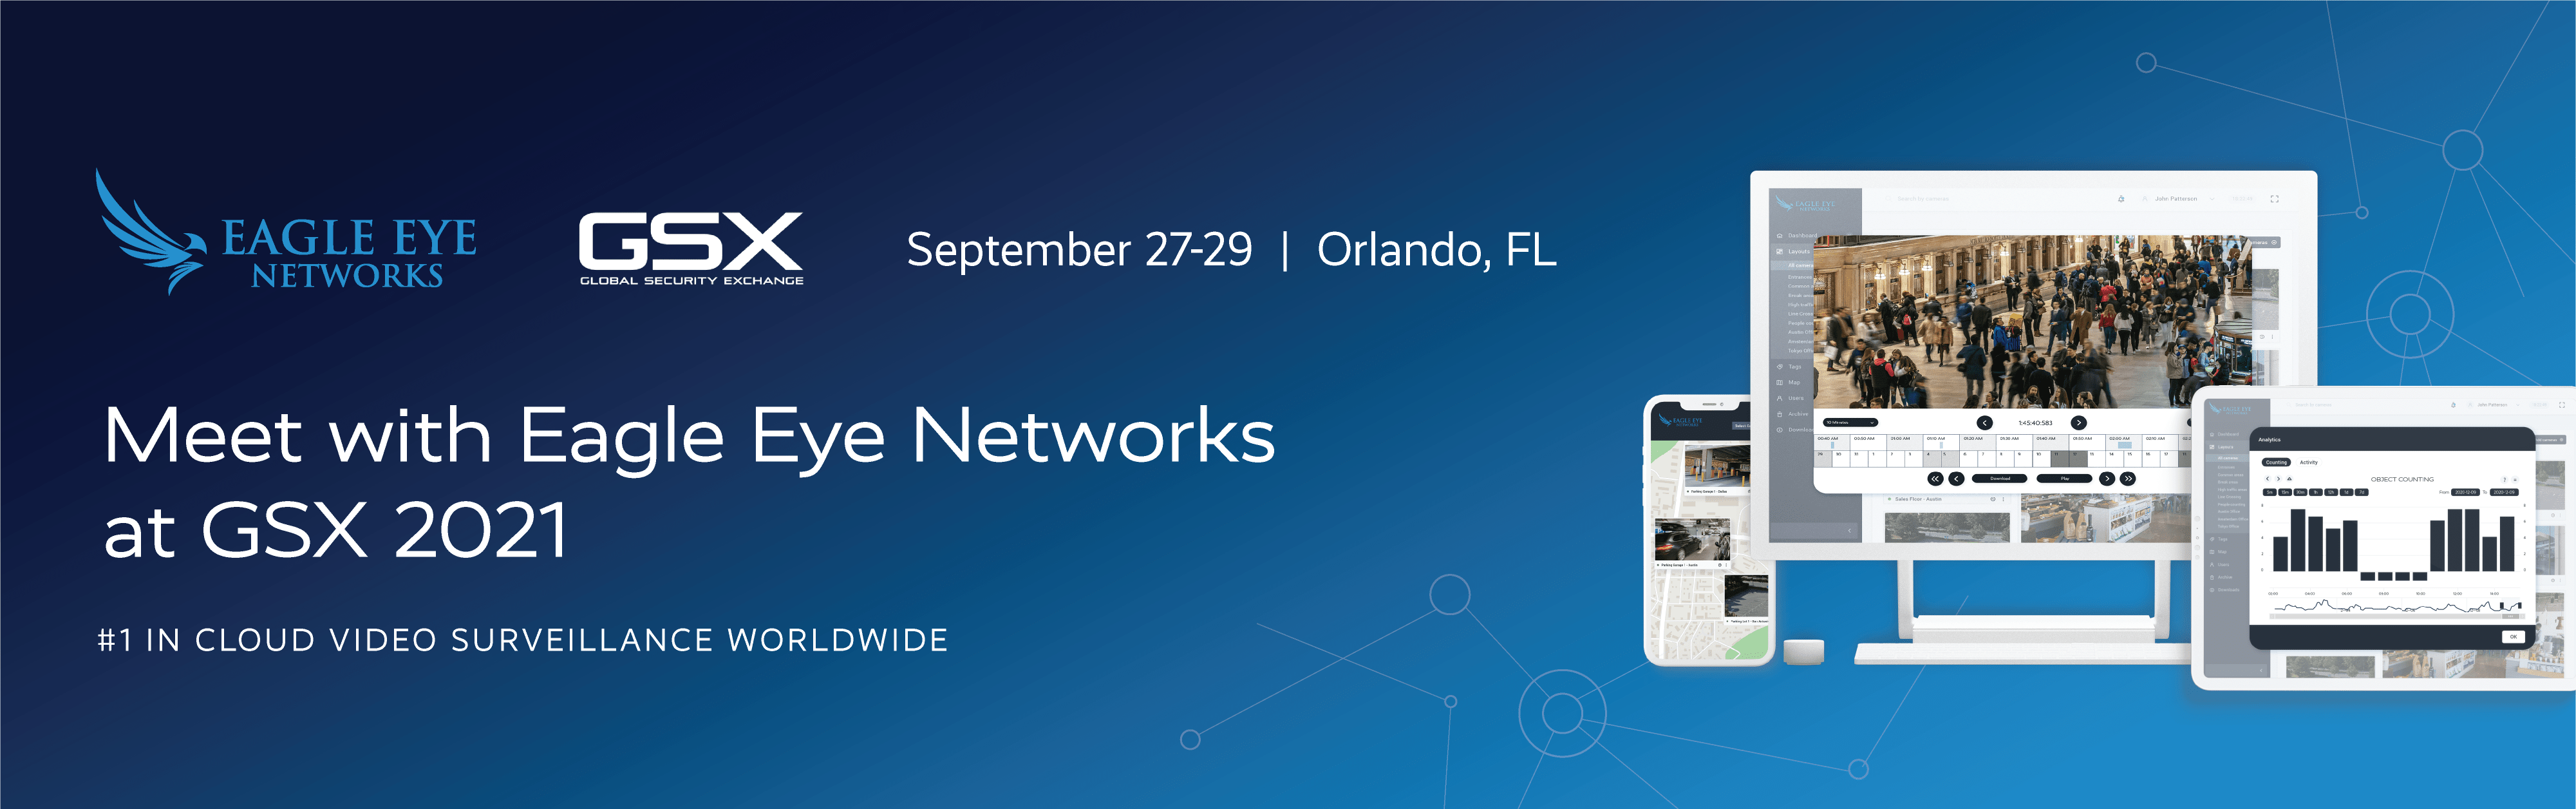 Meet with Eagle Eye Networks at GSX 2021